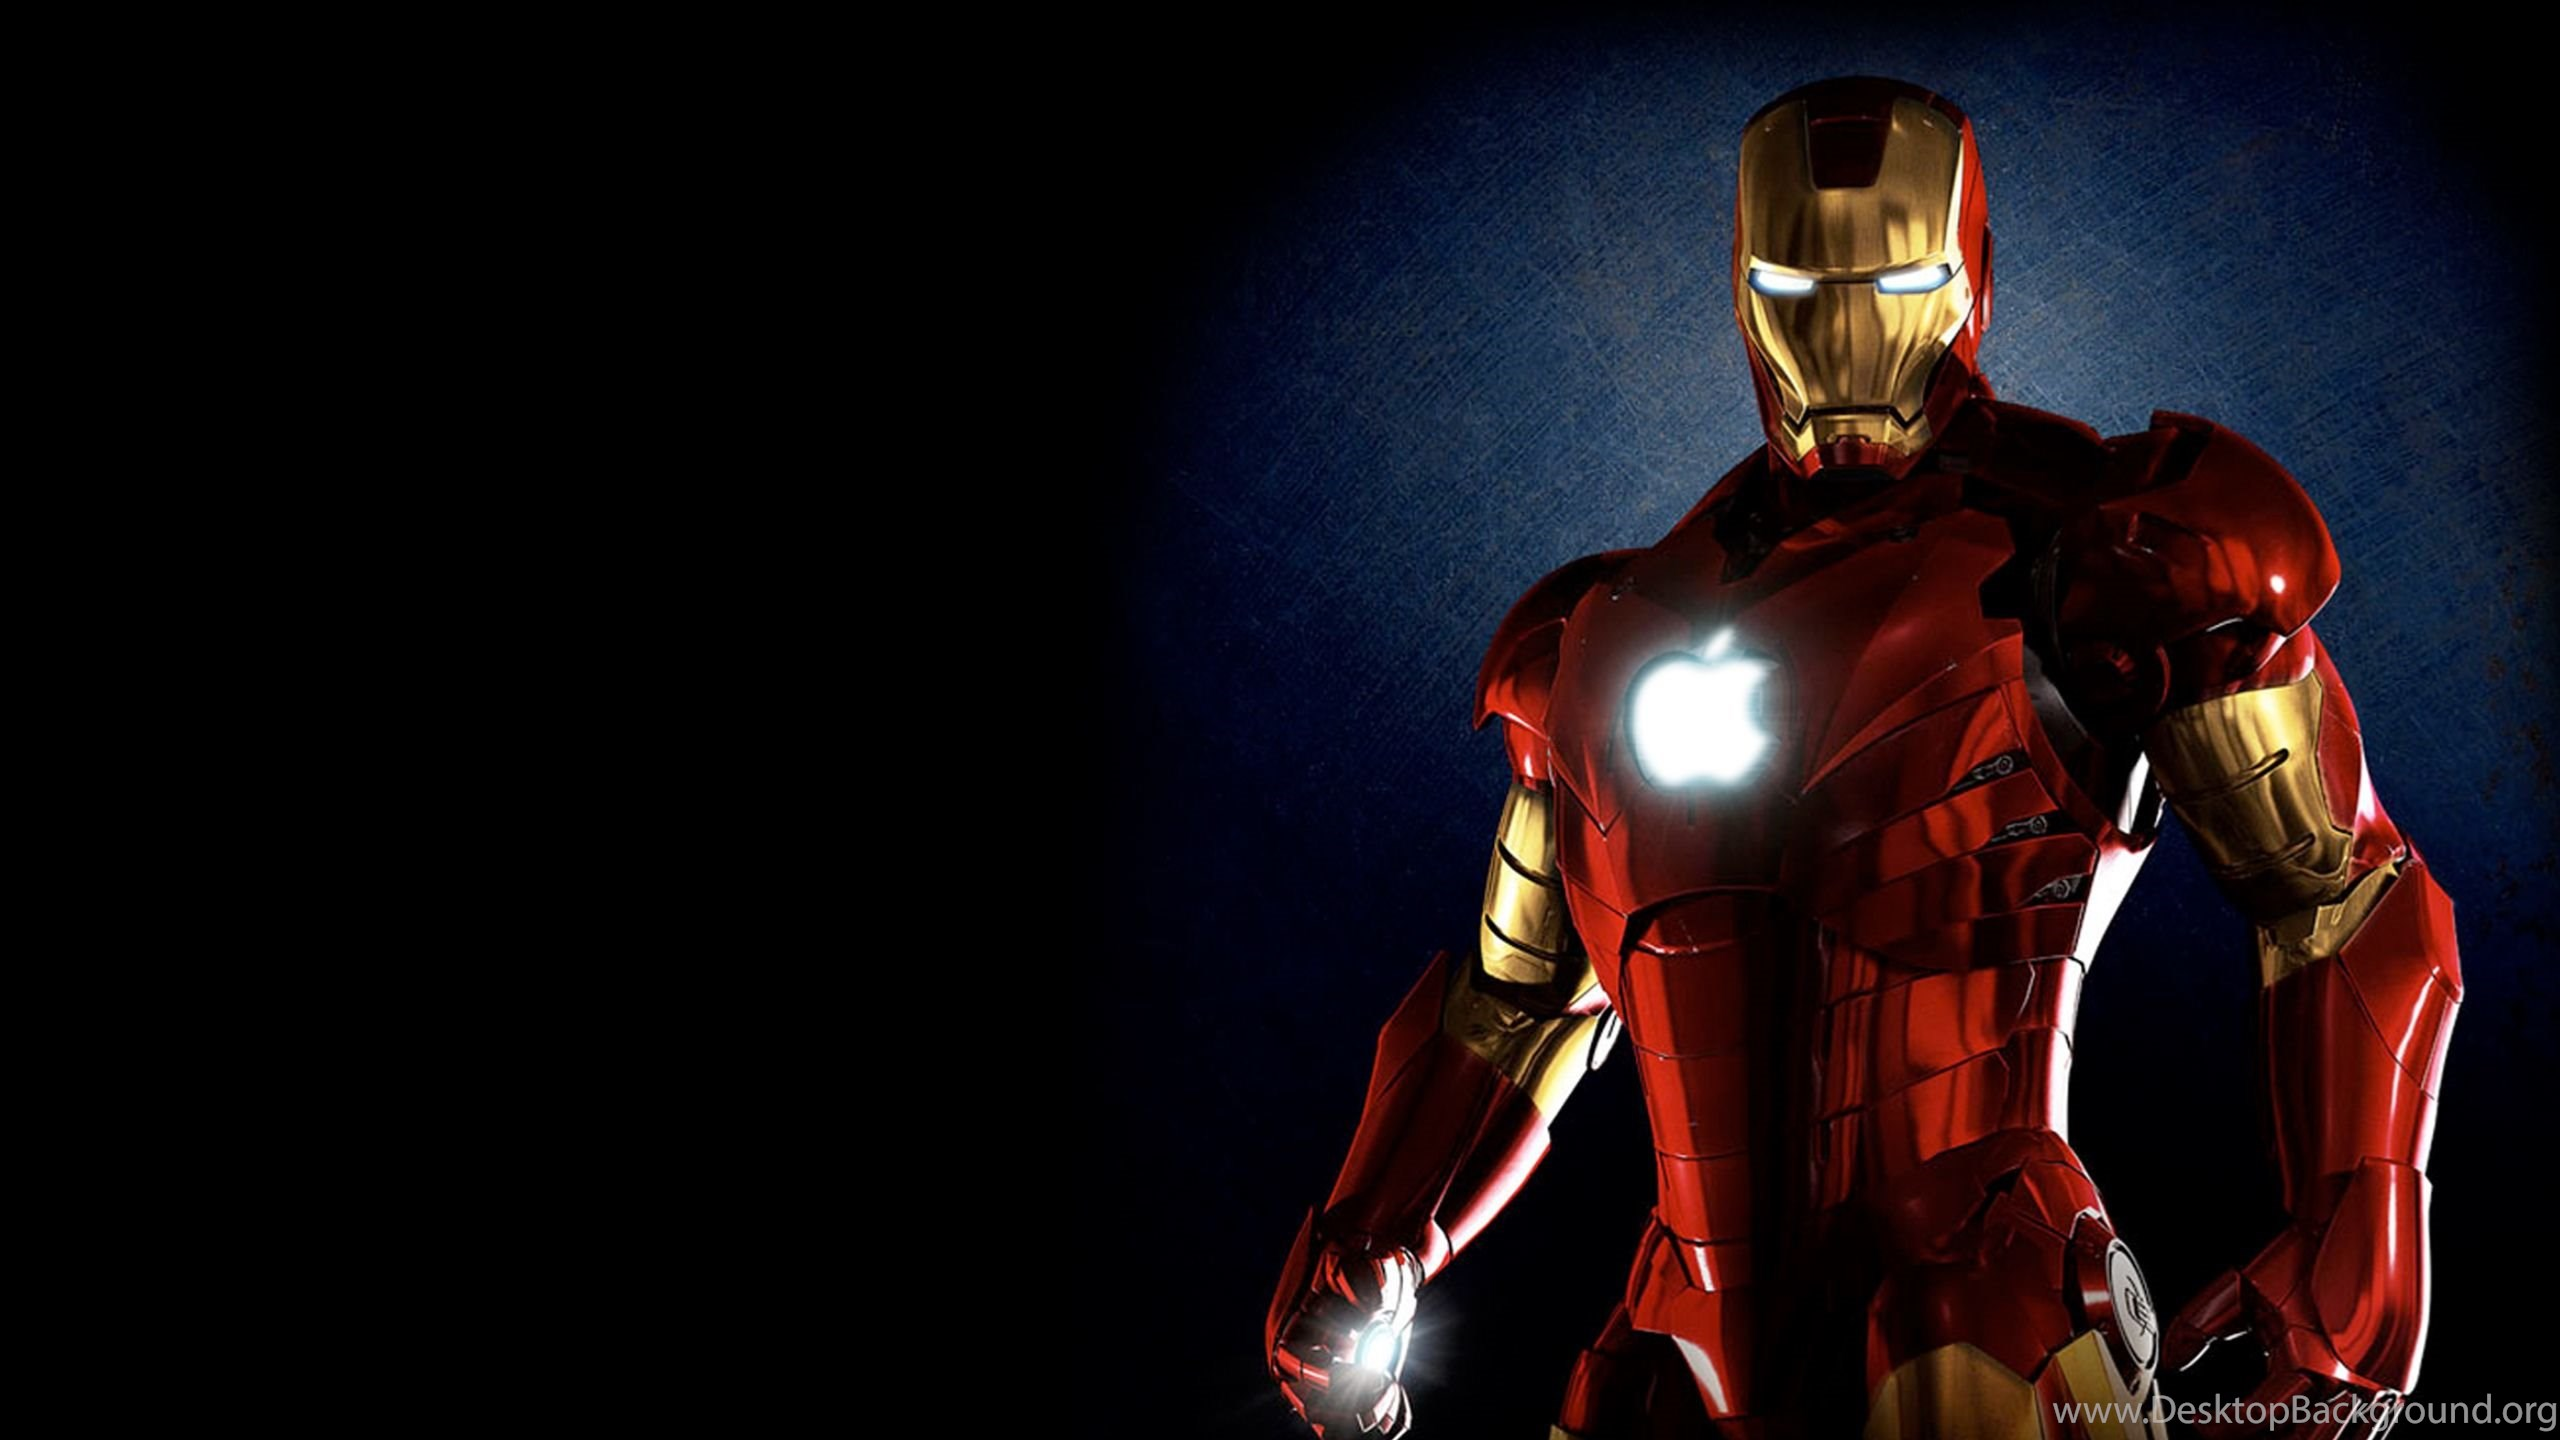 Hd Wallpapers Iron Man: Iron Man Wallpapers HD Pictures Desktop Background